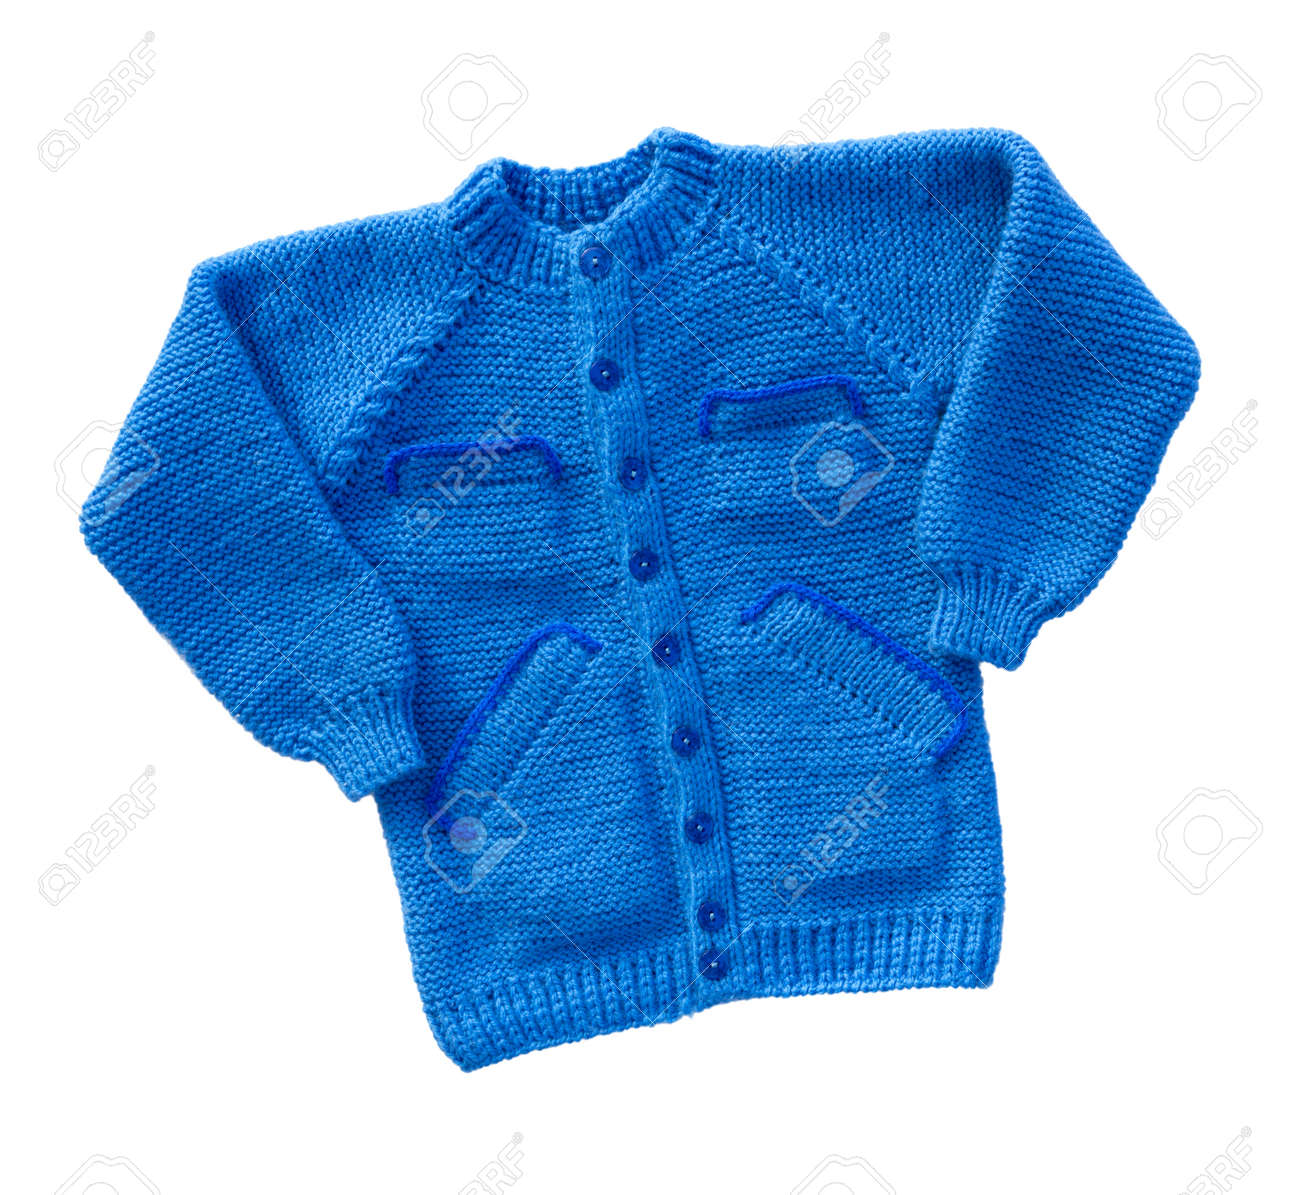 b5d256c182c5 Sweater Isolated On White Background. Children Warm Pullover ...